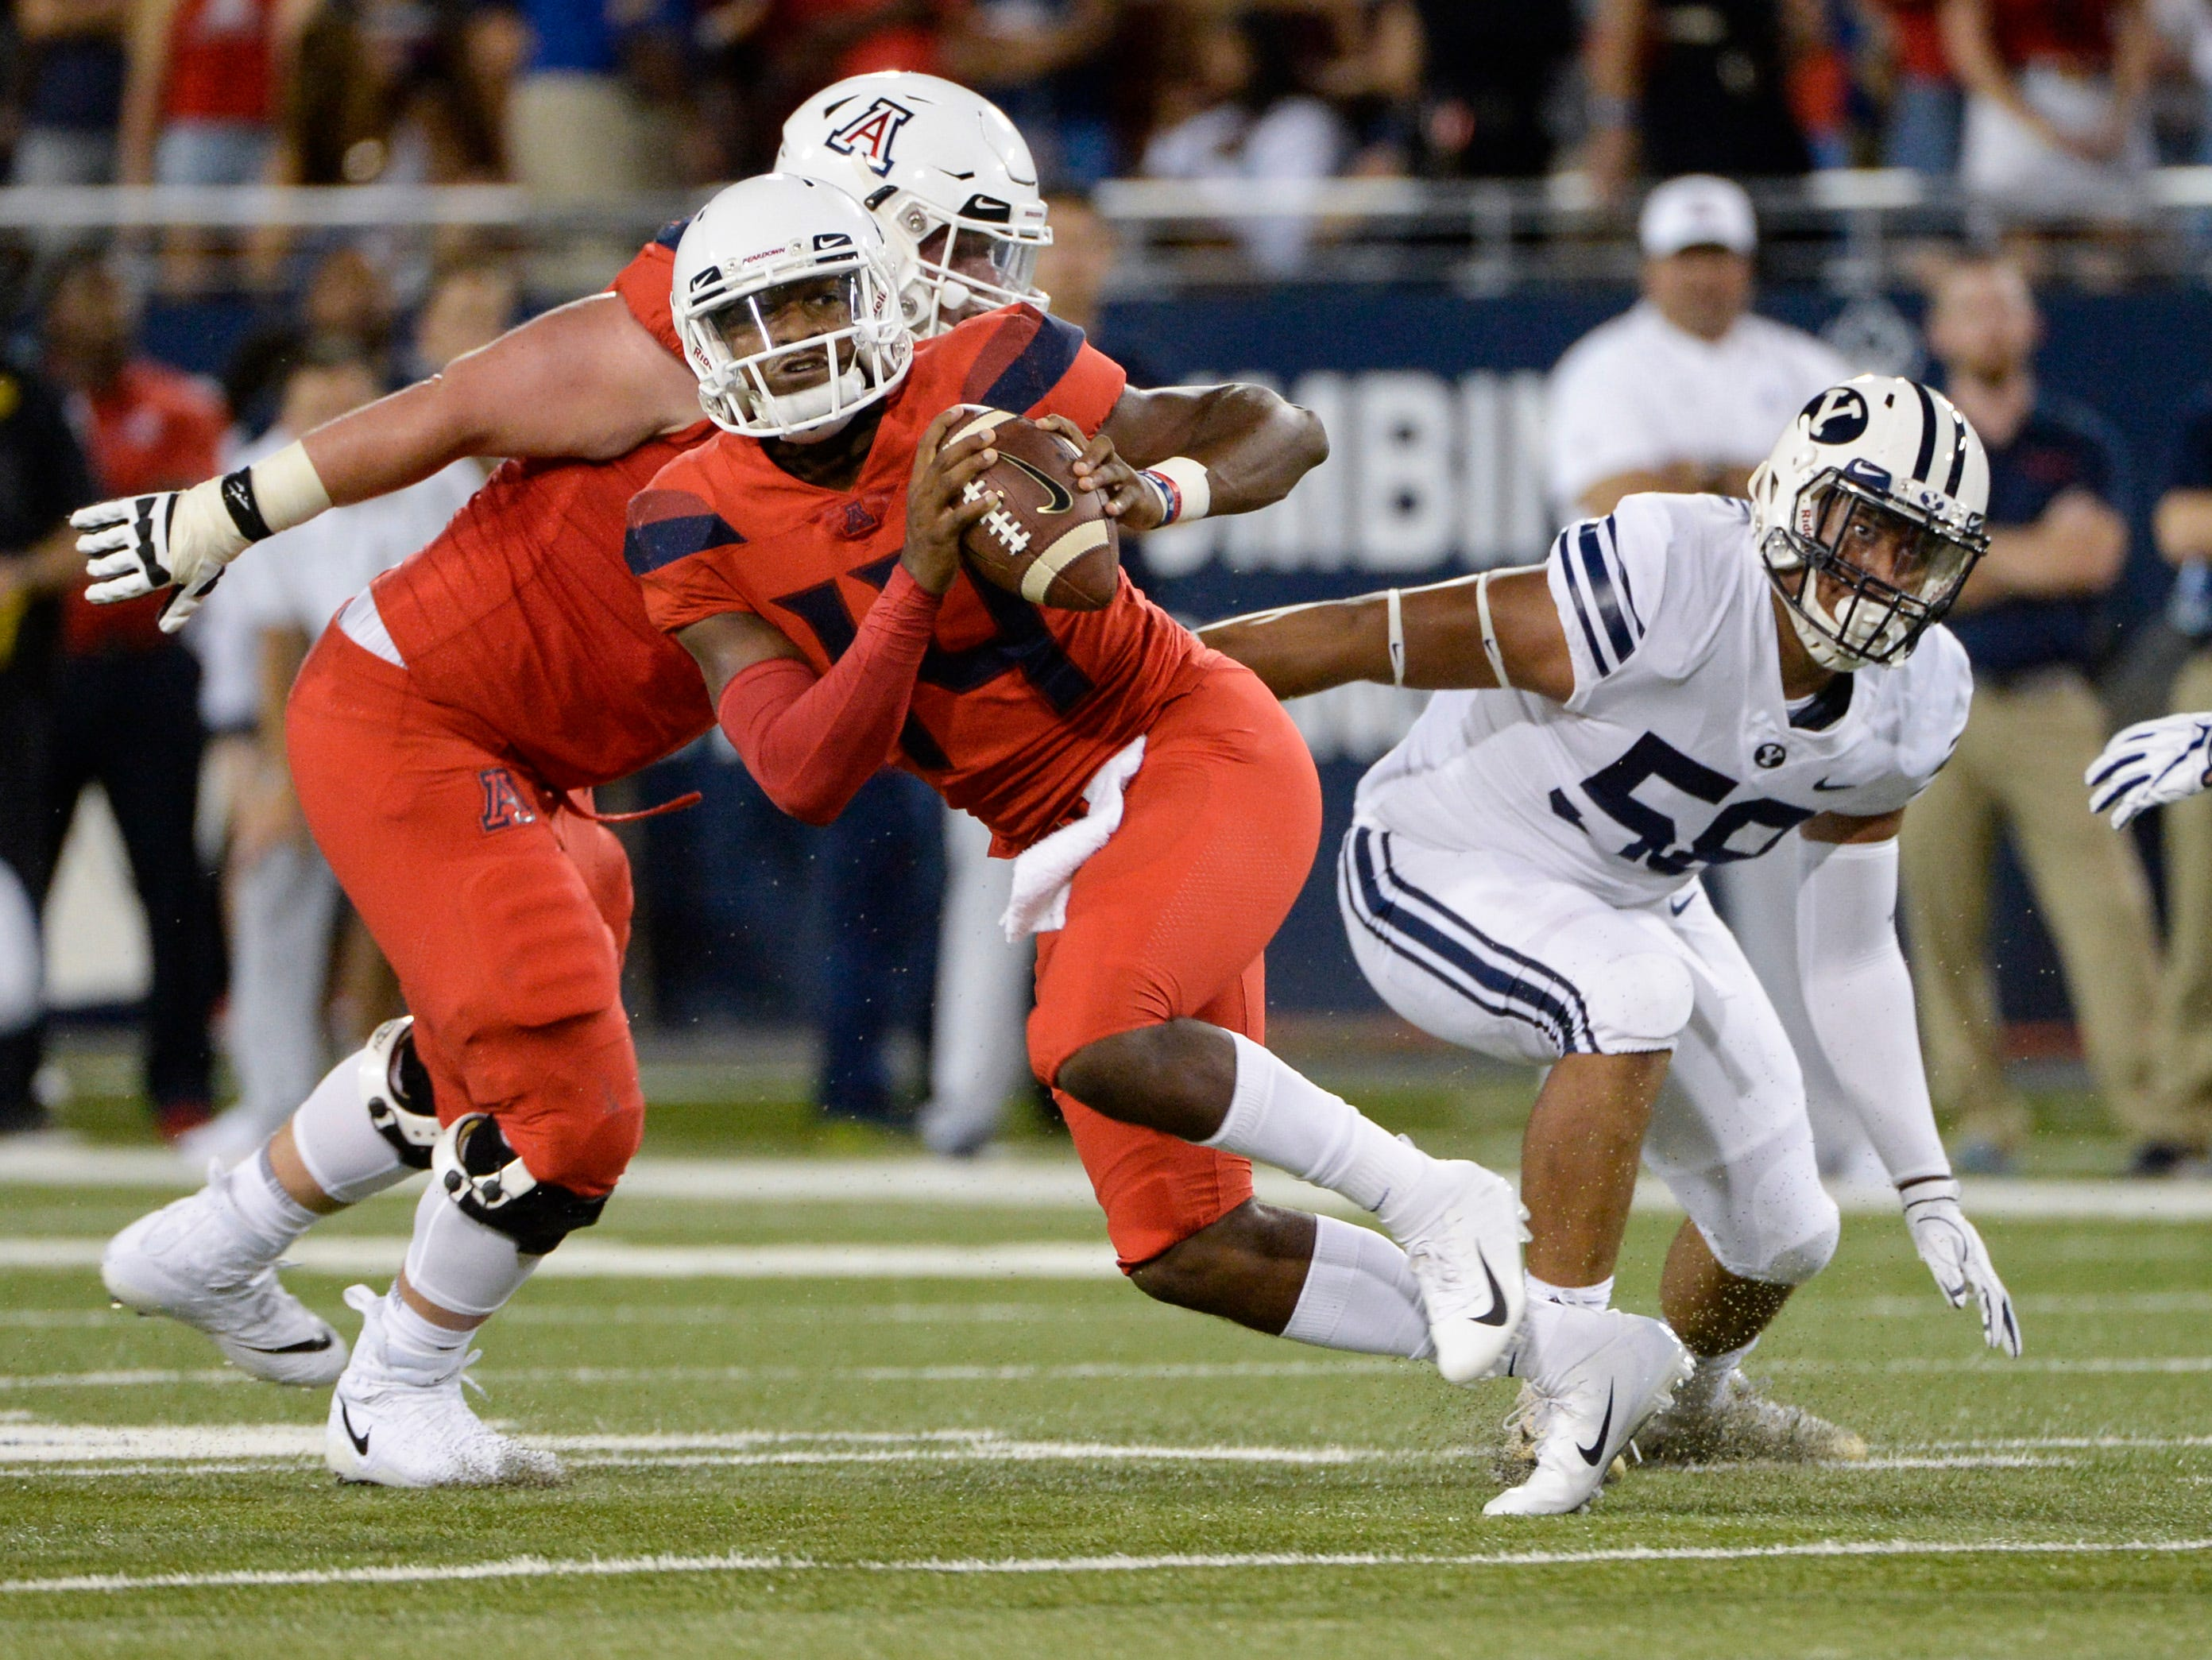 Sep 1, 2018; Tucson, AZ, USA; Arizona Wildcats quarterback Khalil Tate (14) looks to pass under pressure from Brigham Young Cougars defensive lineman Uriah Leiataua (58) during the first quarter at Arizona Stadium.